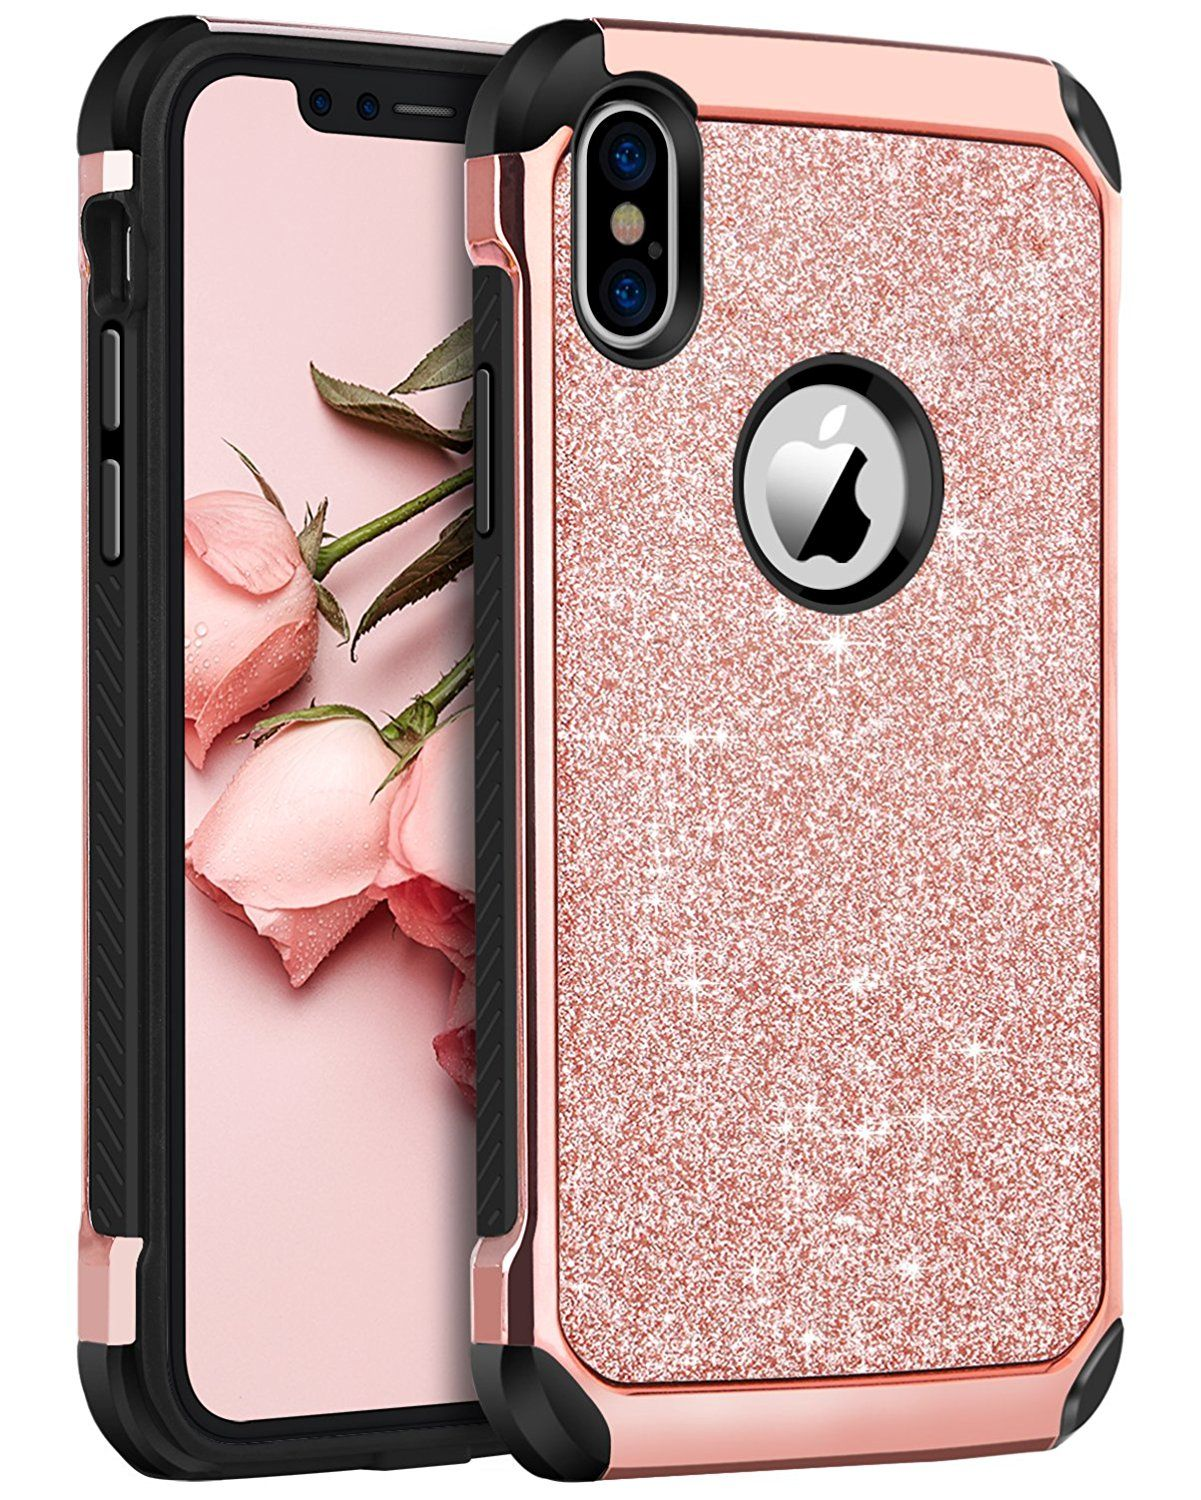 10 mobile amazing case for girls